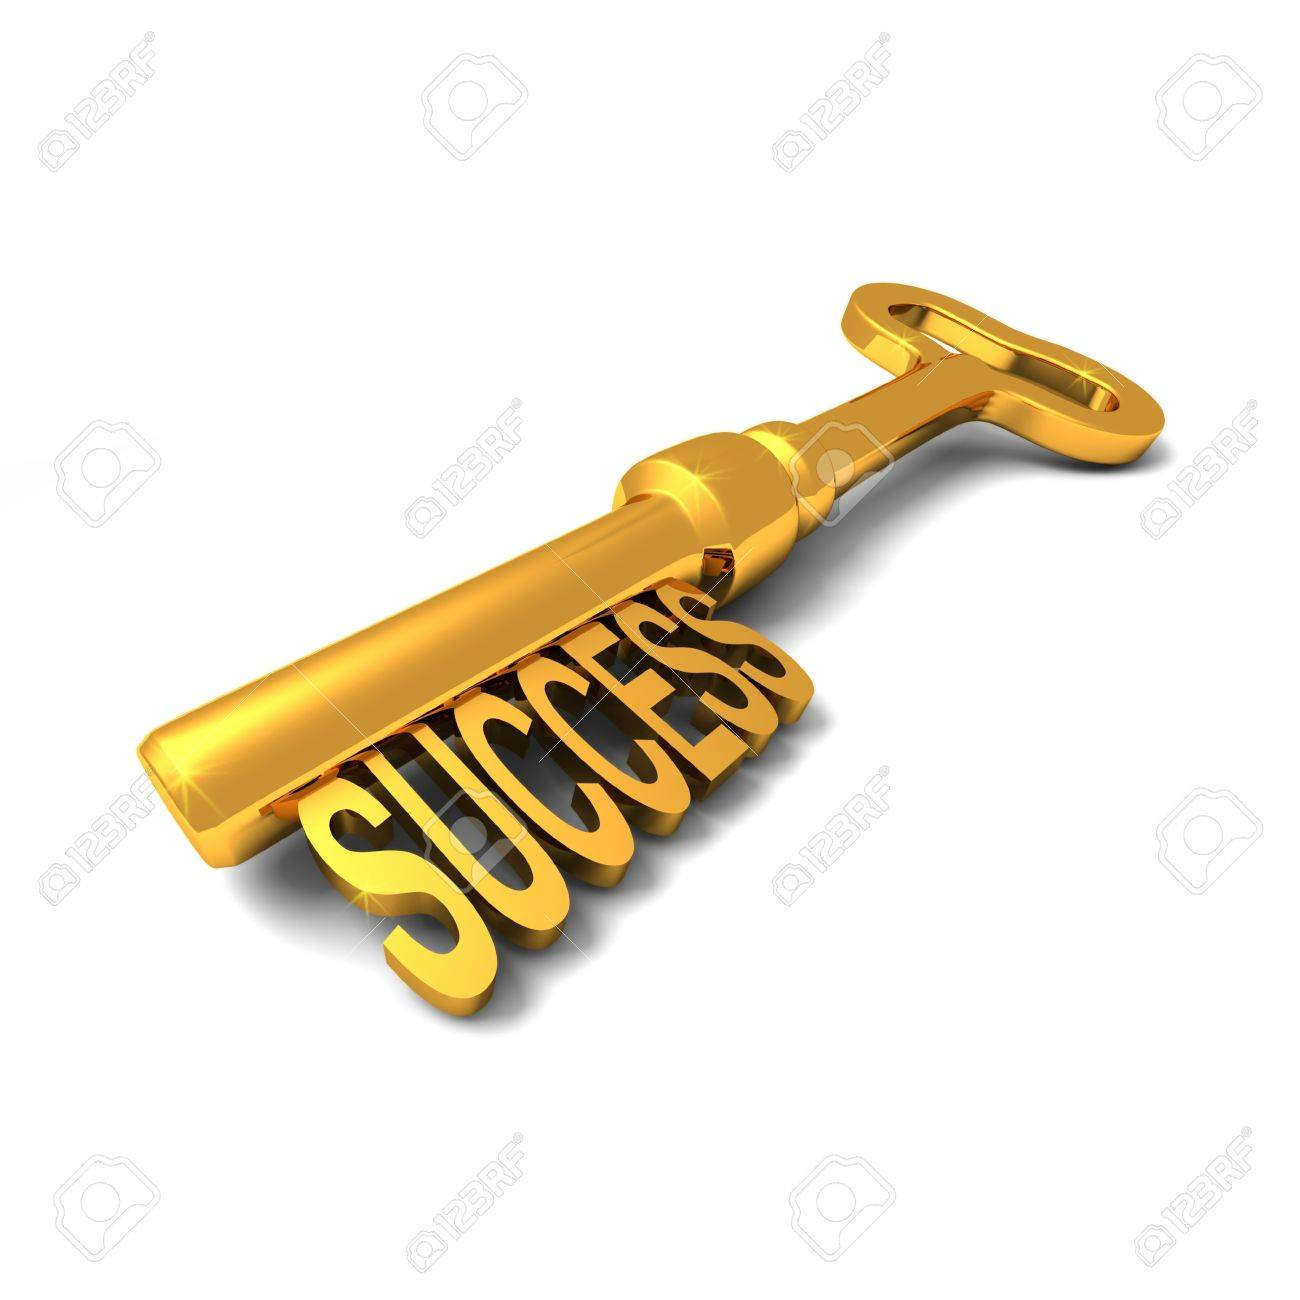 With golden key 3d rendering plan concept with golden key 3d rendering - Golden Key 3d Render Of Shiny Golden Key With The Word Success